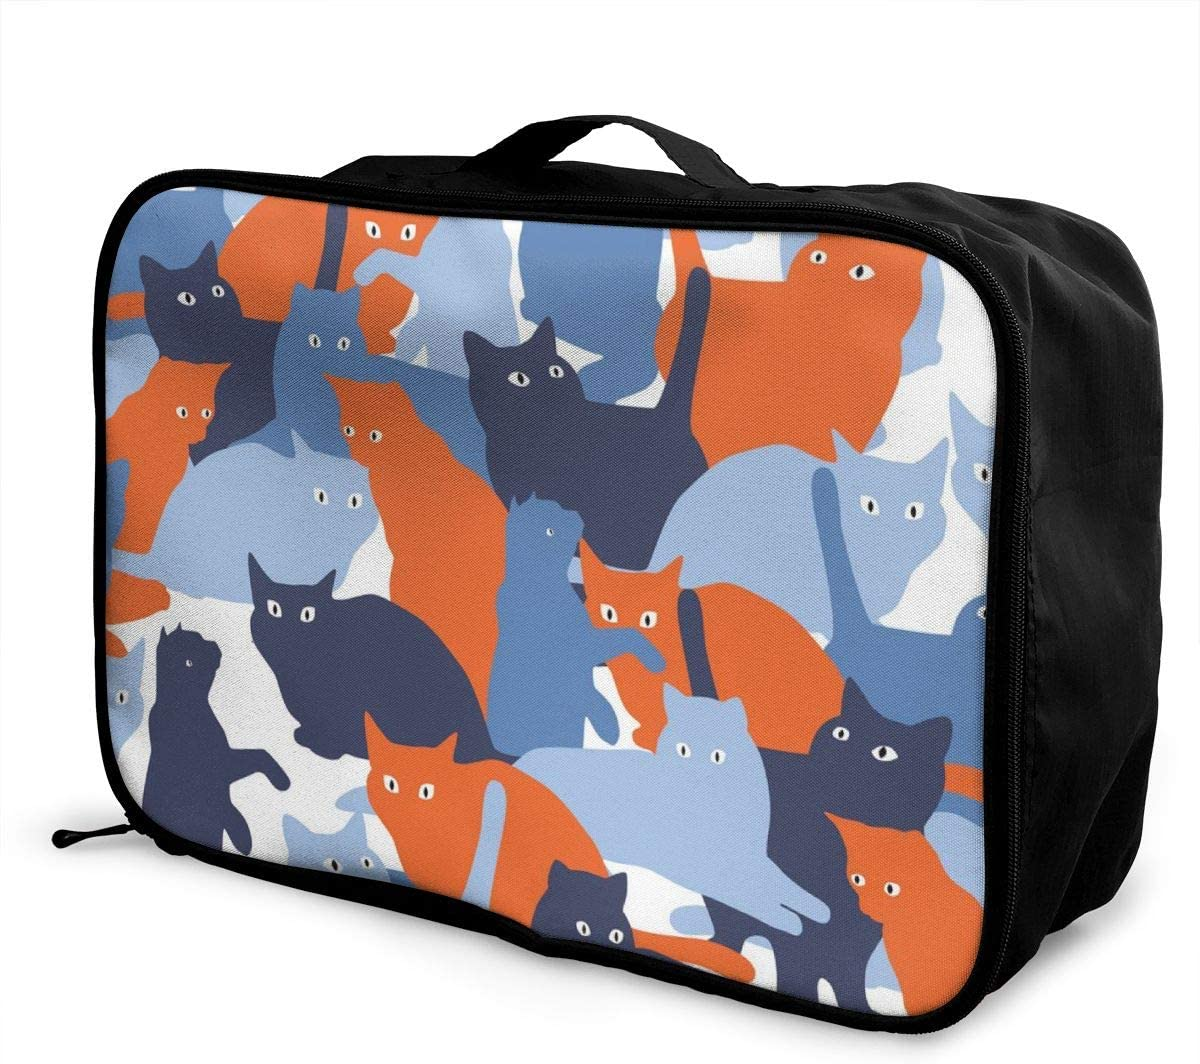 Yunshm Seamless Pattern With Cats In Military Style Personalized Trolley Handbag Waterproof Unisex Large Capacity For Business Travel Storage